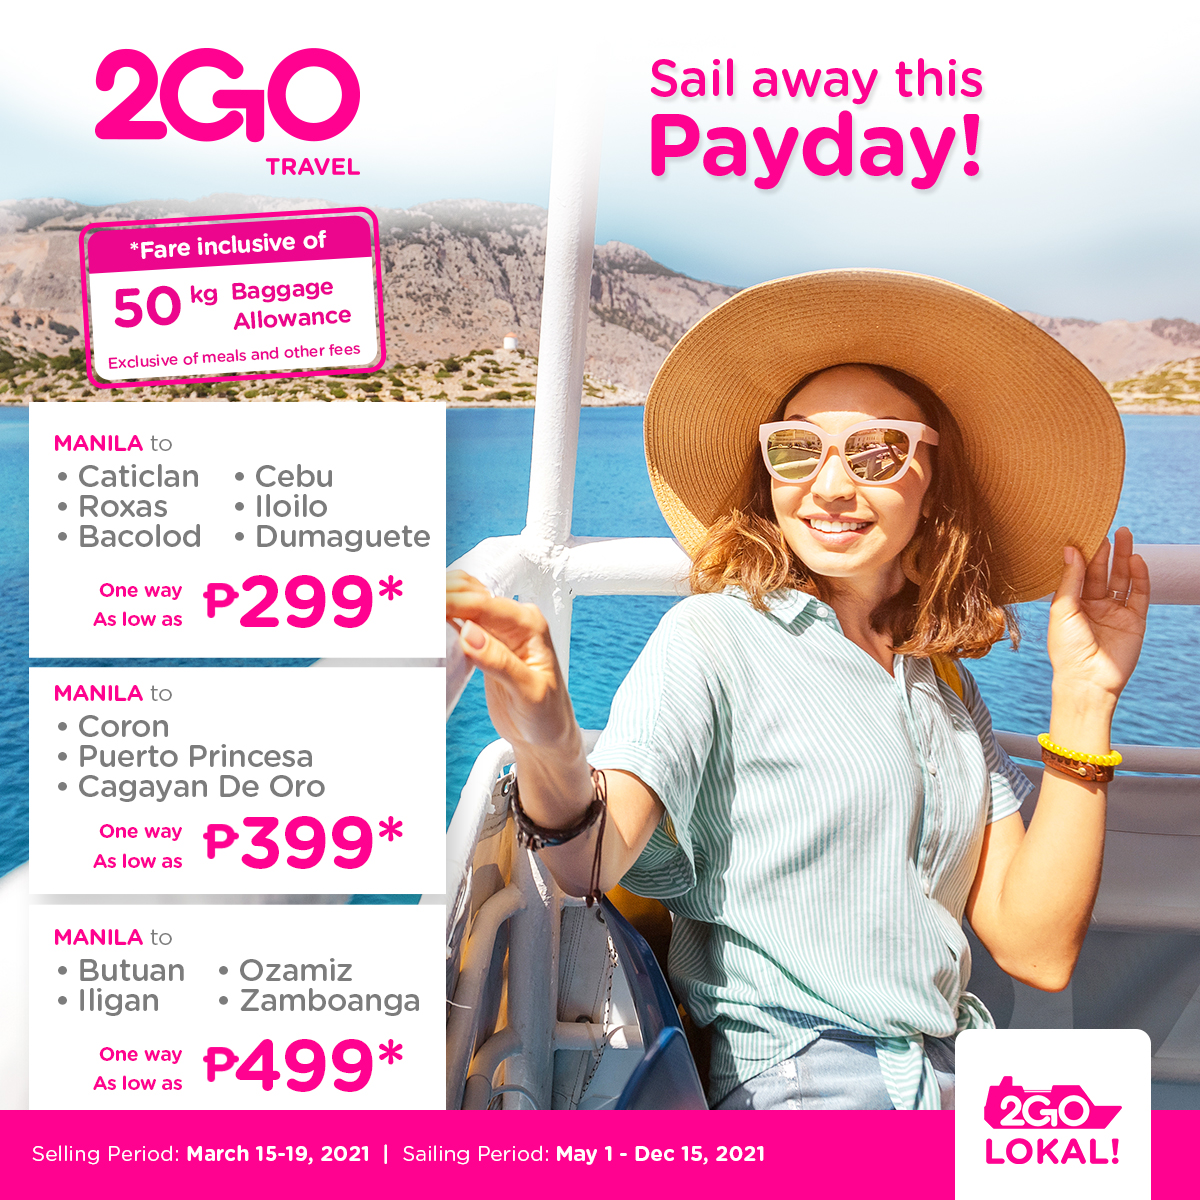 celebrate-labor-day-with-2go-travel-for-only-₱299